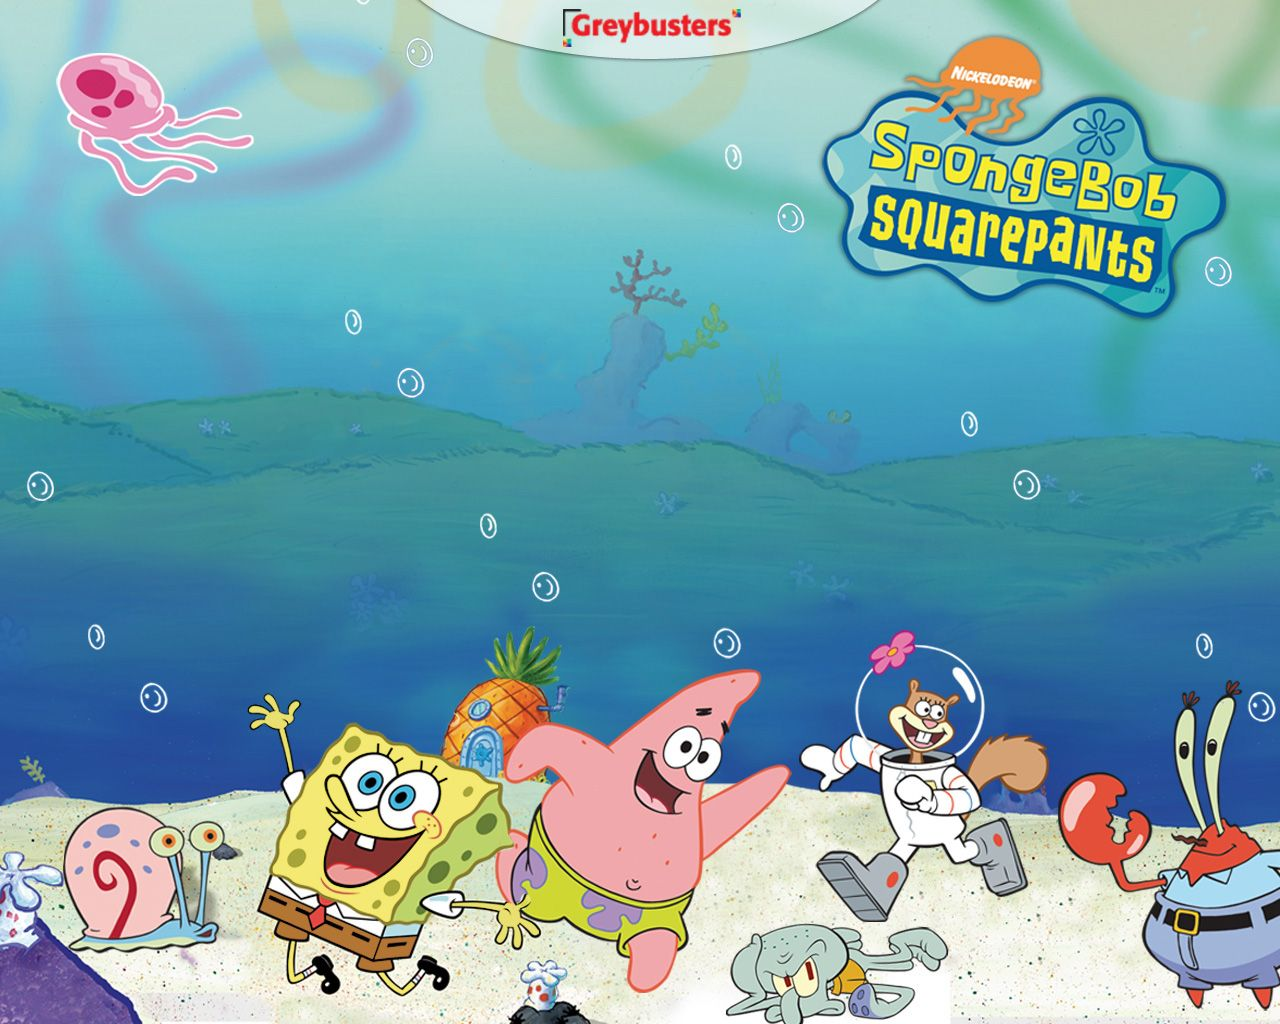 Spongebob Squarepants Wallpaper With 1280x1024 Resolution Download